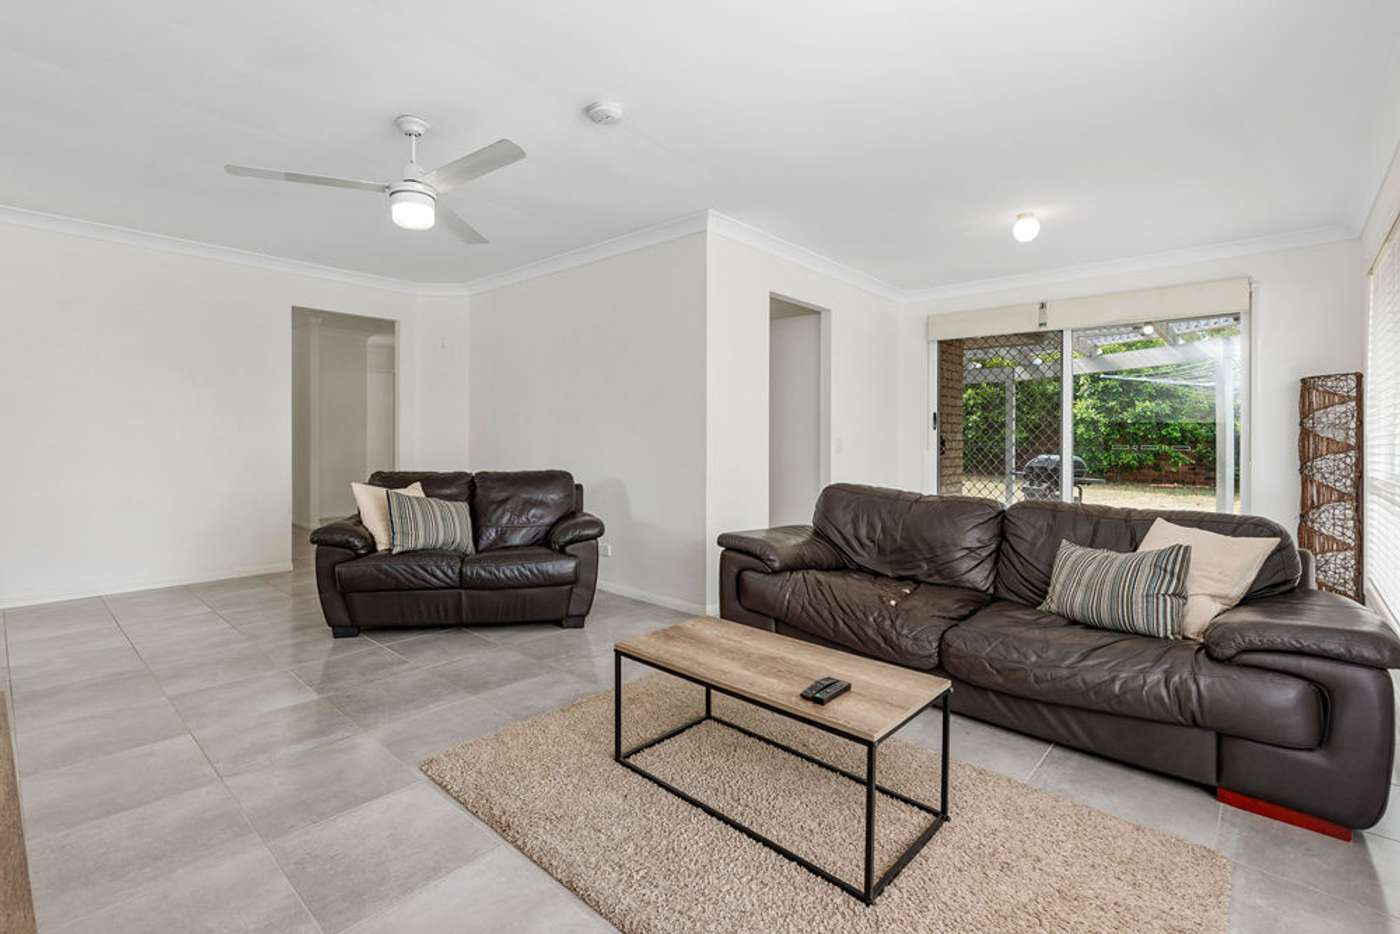 Fifth view of Homely house listing, 18 Ashwood Circuit, Birkdale QLD 4159